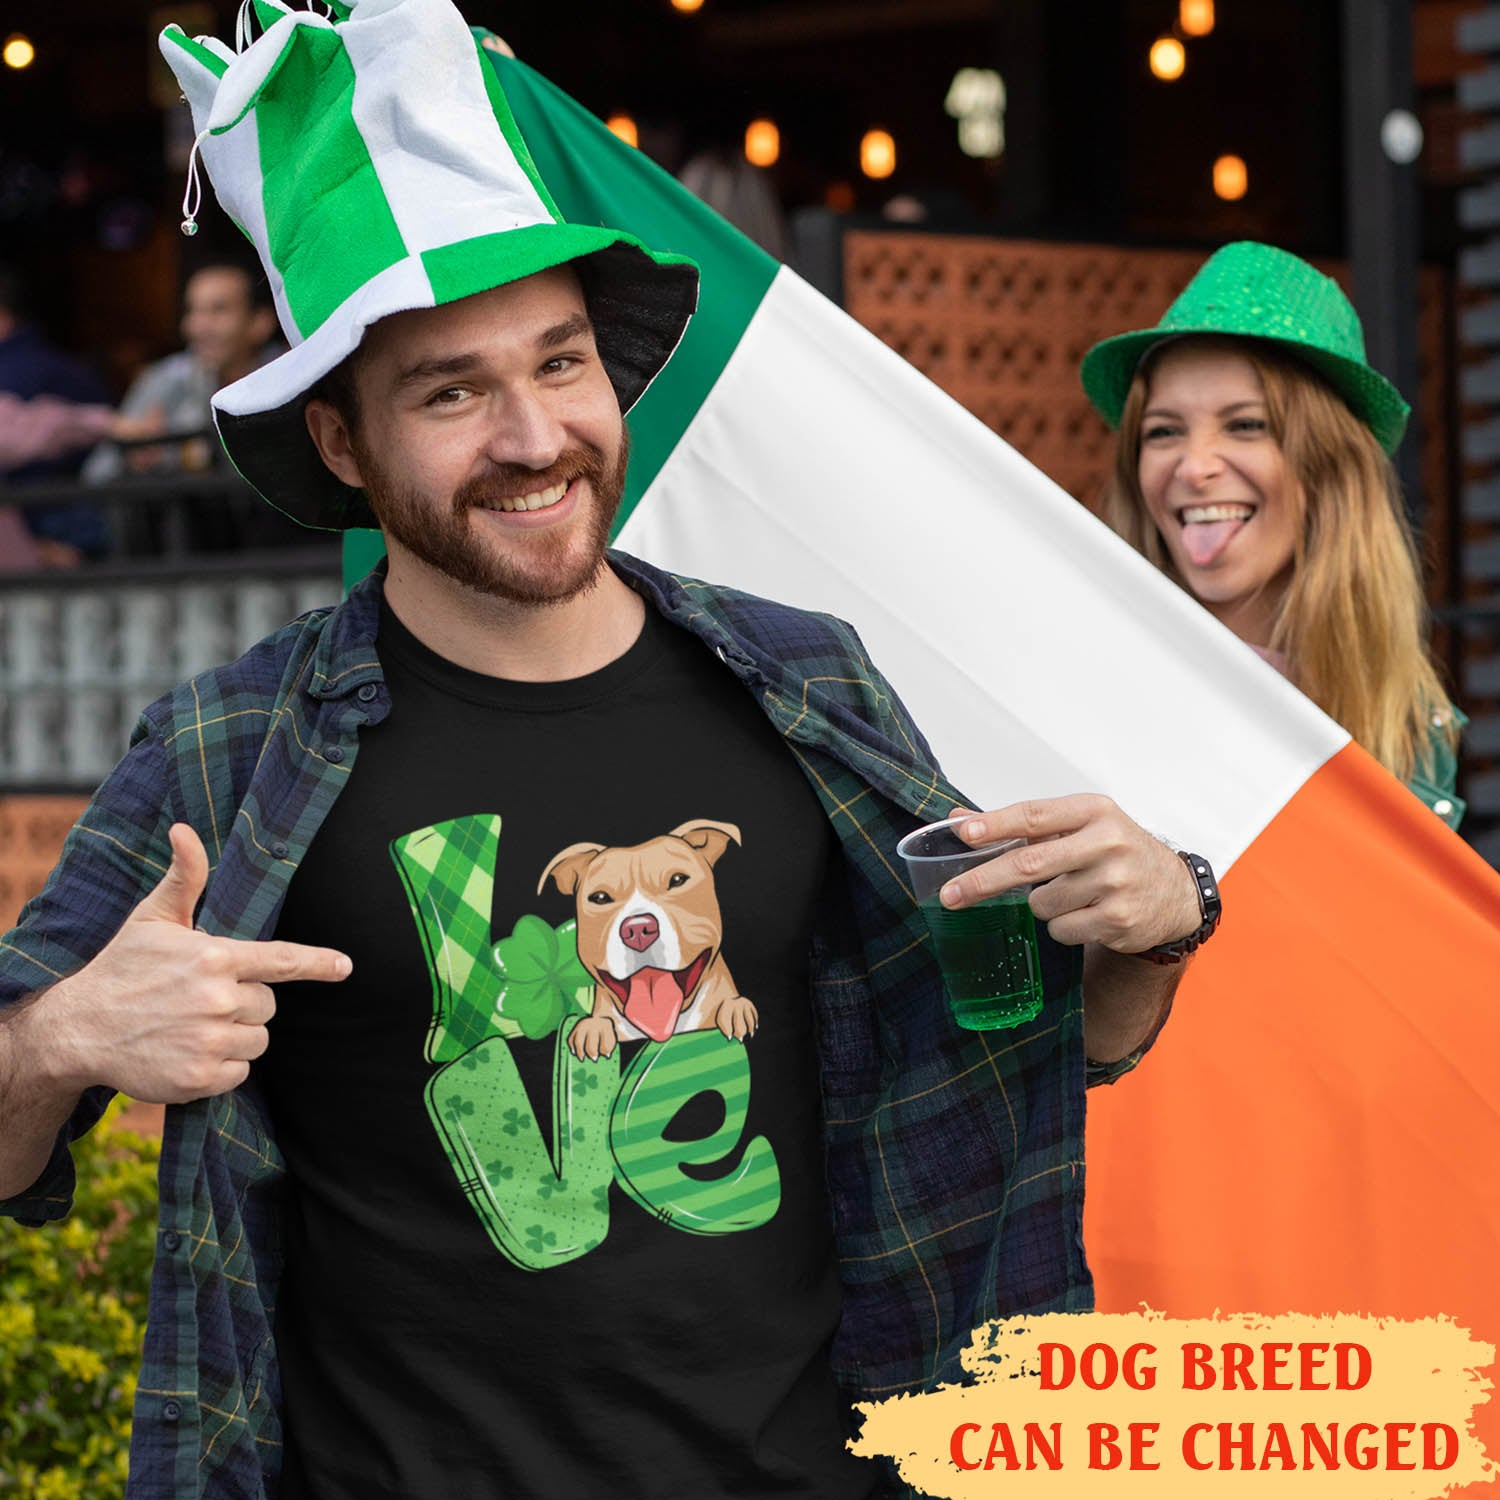 Love St. Patrick - Personalized Custom Premium T-shirt - Gifts For Dog Lovers